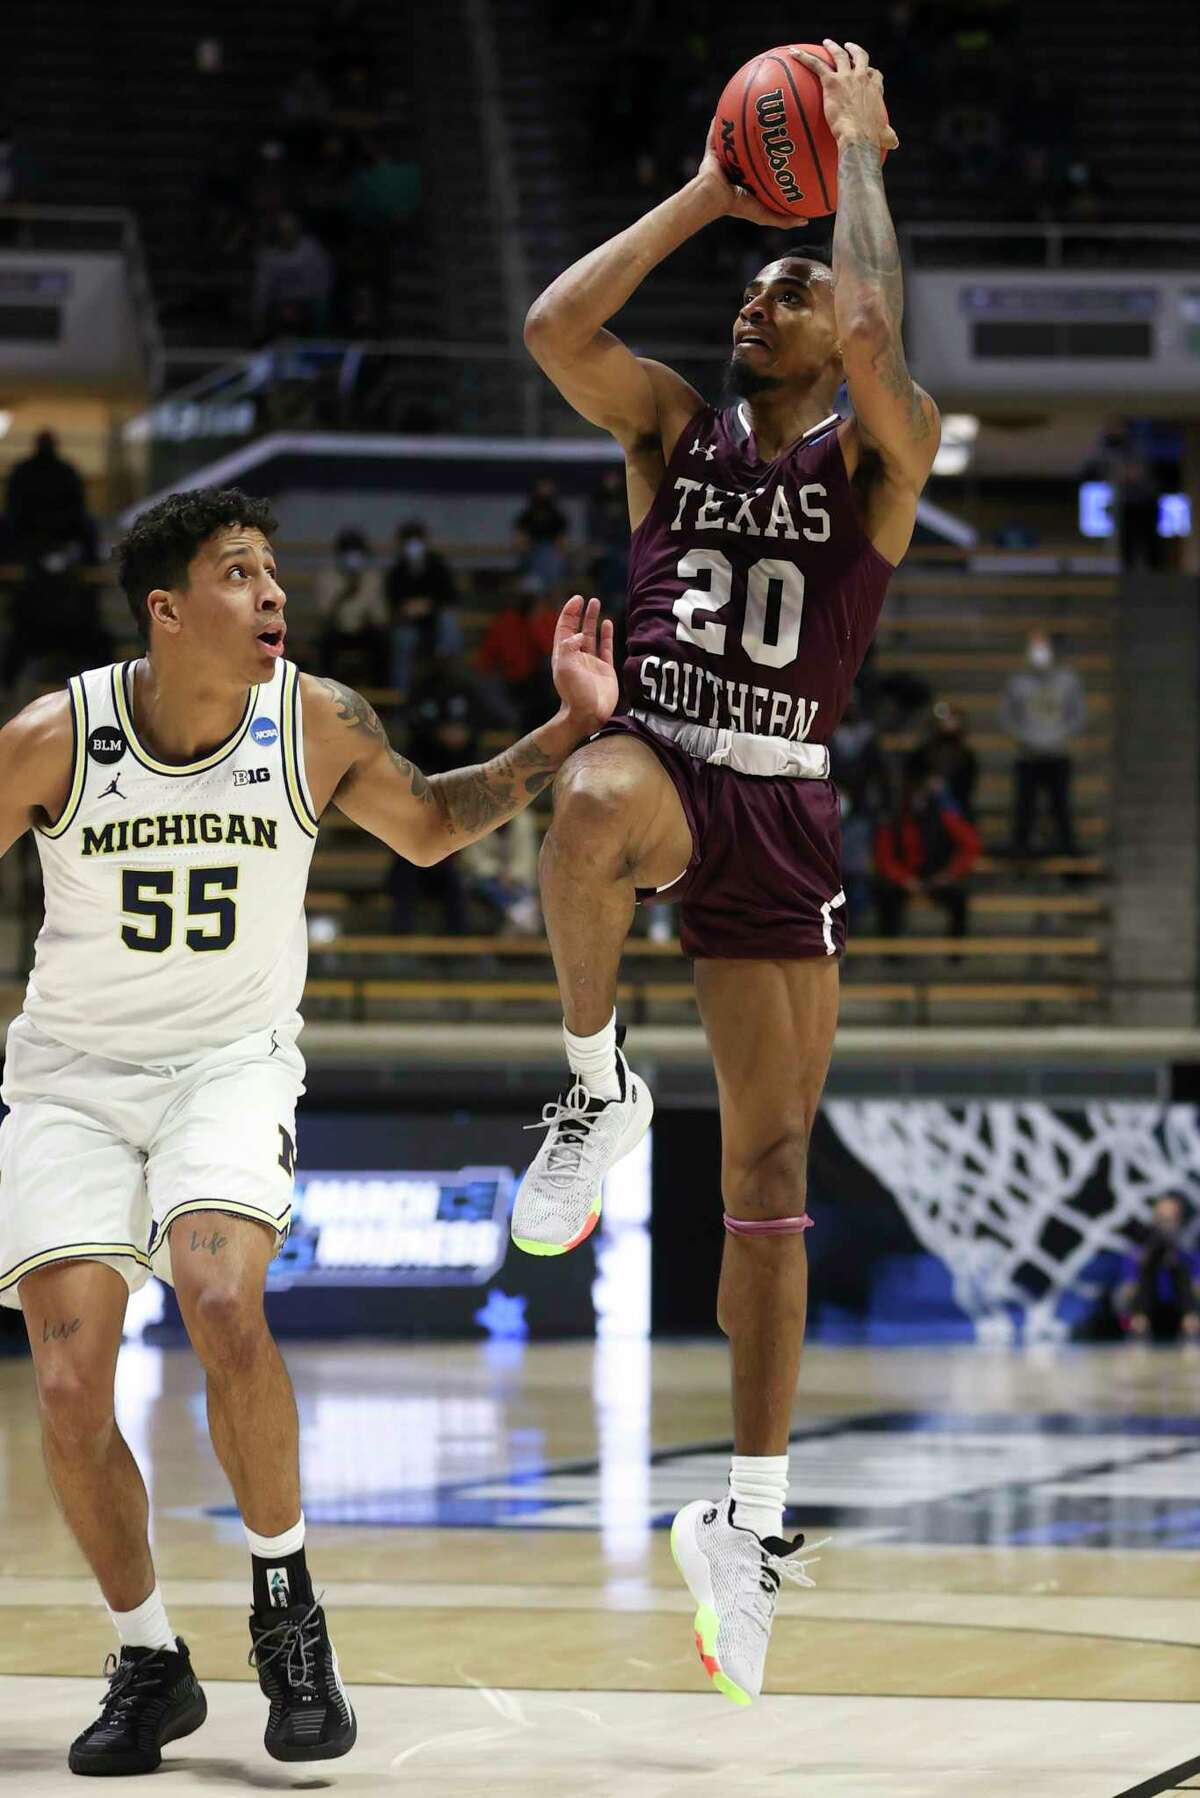 WEST LAFAYETTE, INDIANA - MARCH 20: Michael Weathers #20 of the Texas Southern Tigers shoots against Eli Brooks #55 of the Michigan Wolverines during the first half in the first round game of the 2021 NCAA Men's Basketball Tournament at Mackey Arena on March 20, 2021 in West Lafayette, Indiana.